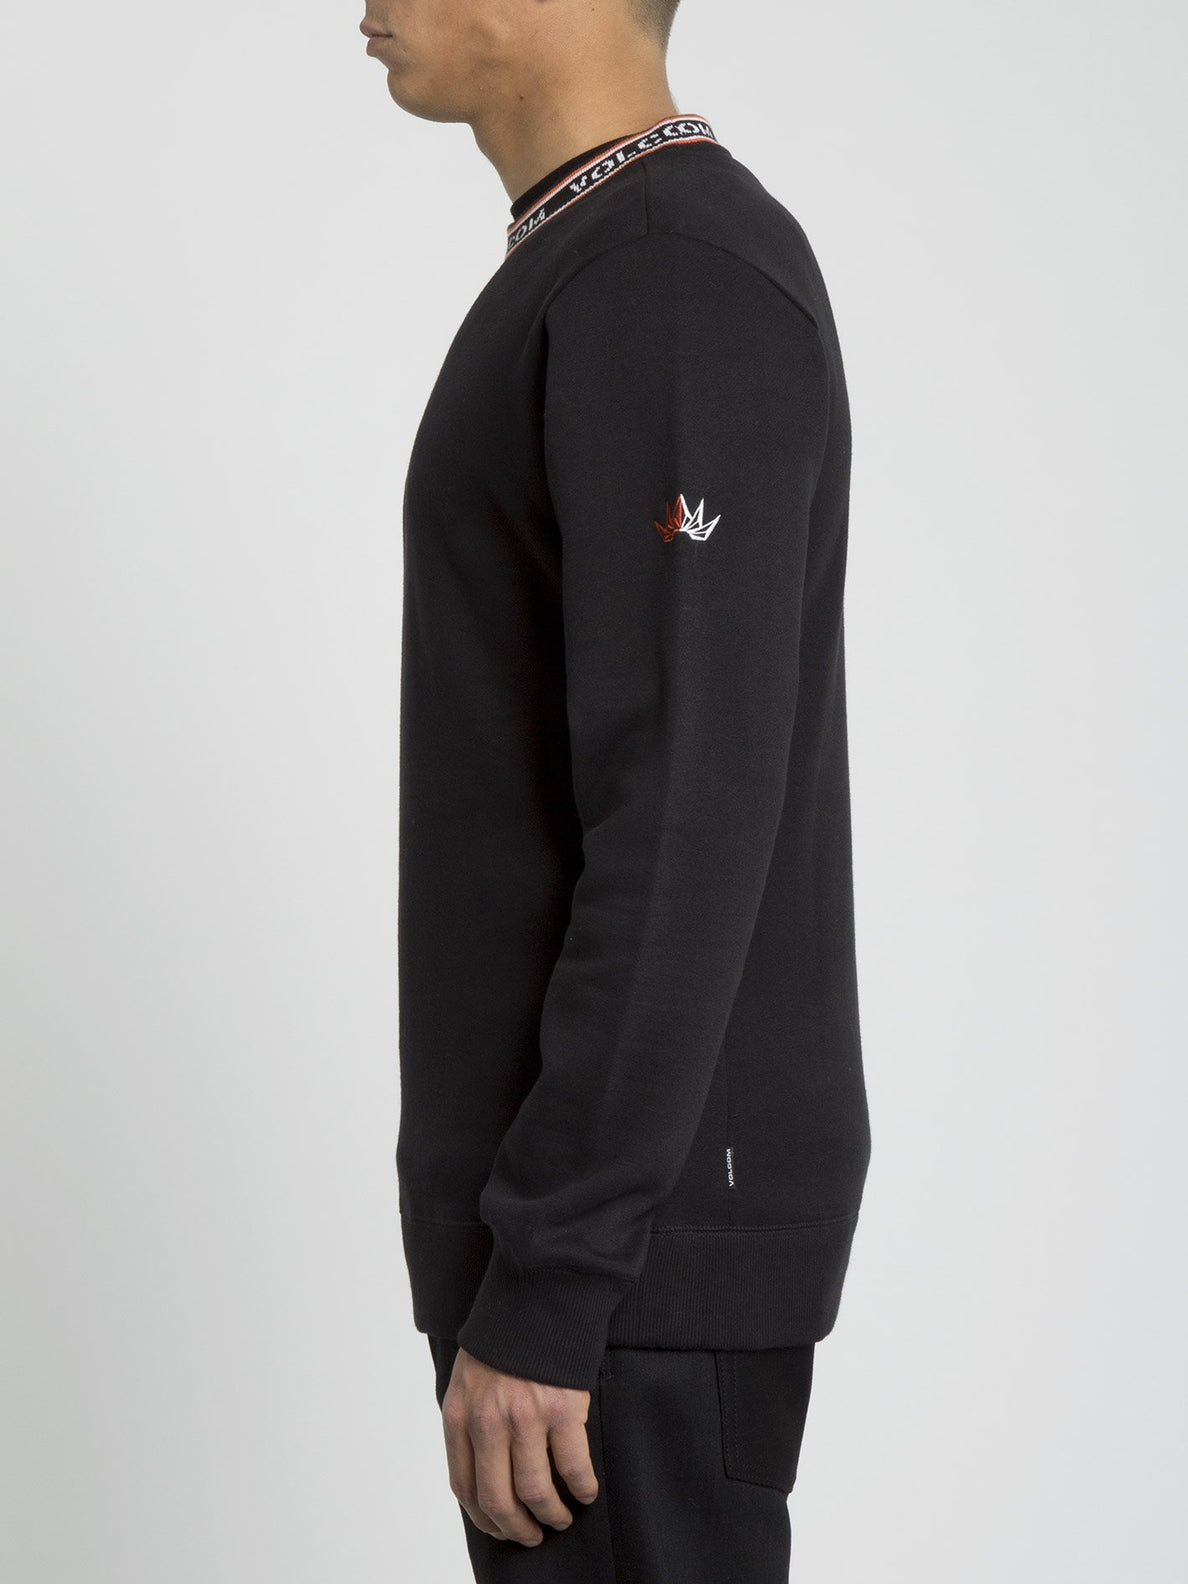 Forward To Past Sweater - Black (A4631900_BLK) [1]